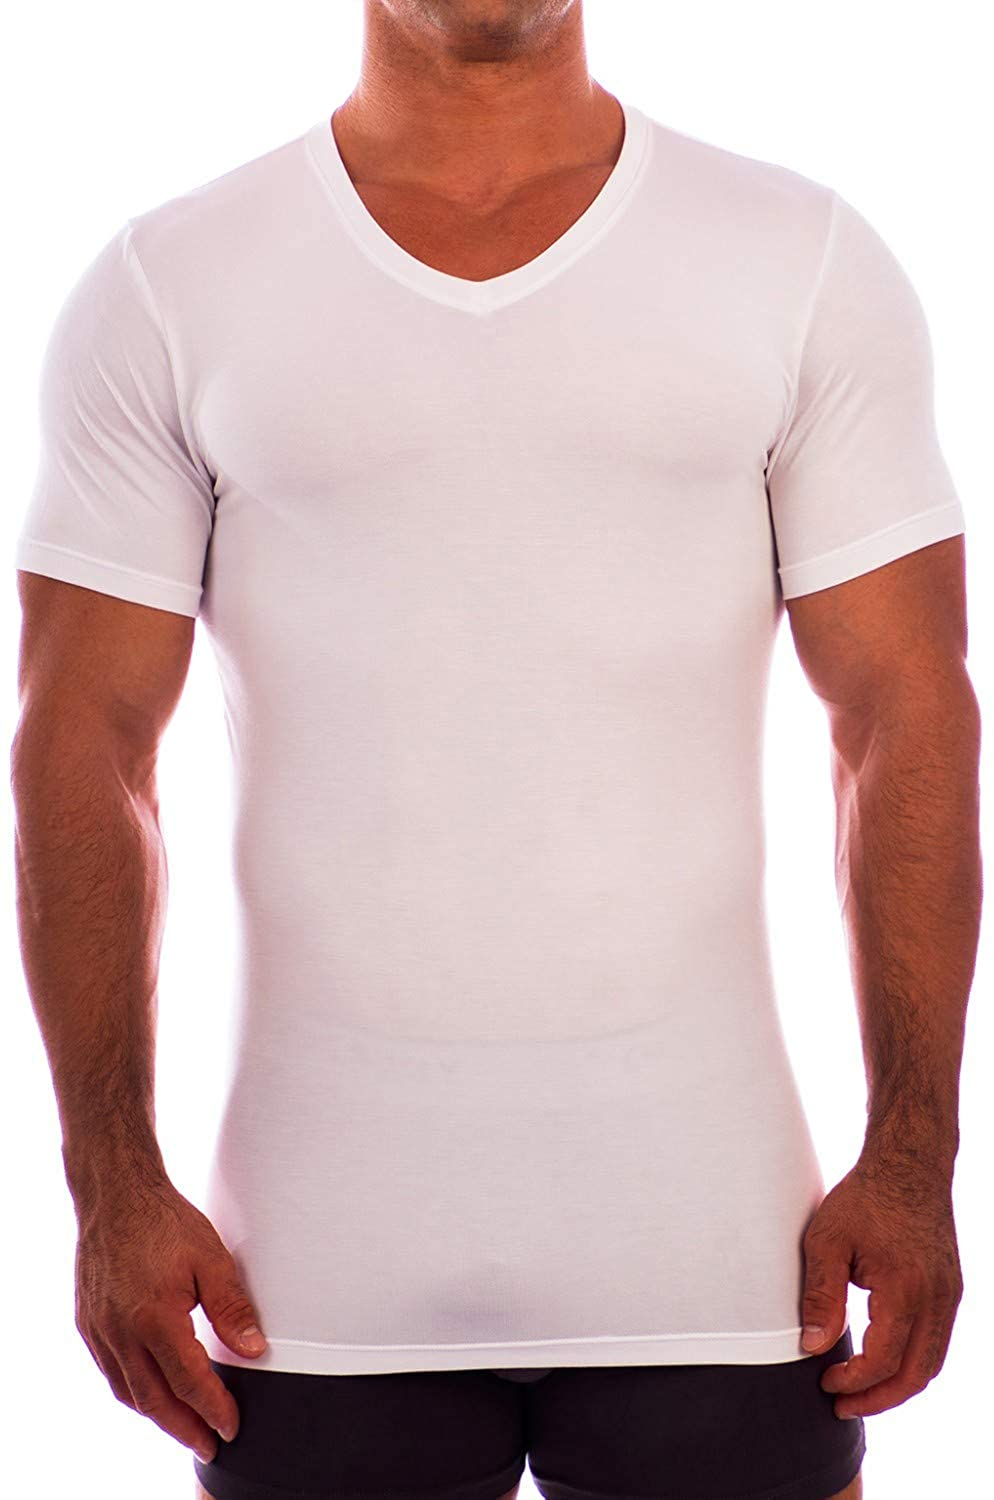 Obviously Apparel Essence V Neck Short Sleeve Undershirt White XLarge